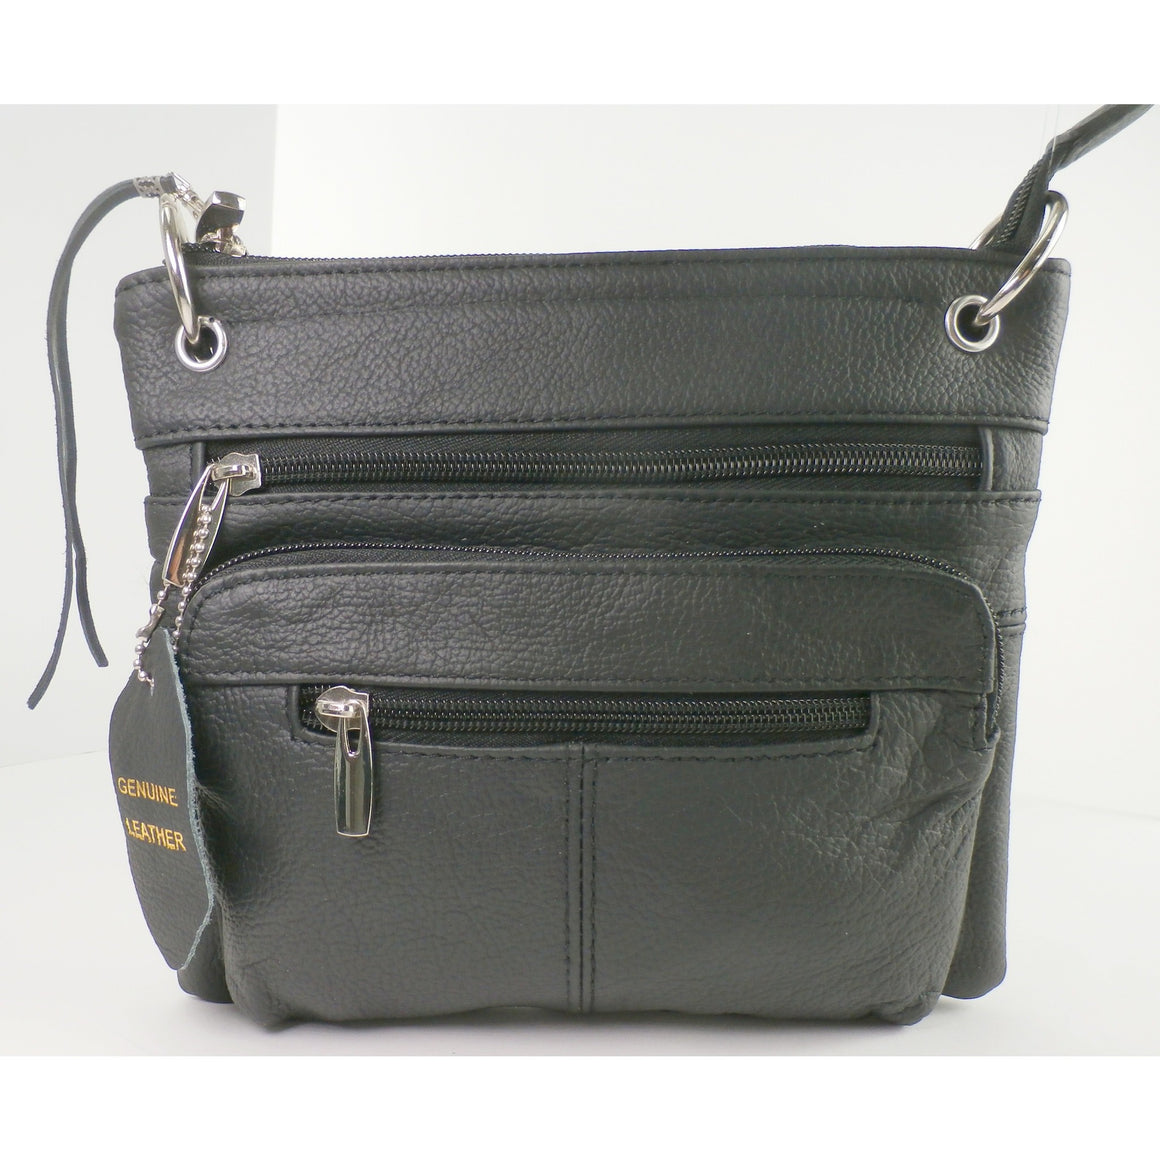 "Candi - A Genuine Leather Concealed ""Medium Minimalist"" Carry Bag -  Wear, Carry or Drop in your Purse or Tote"